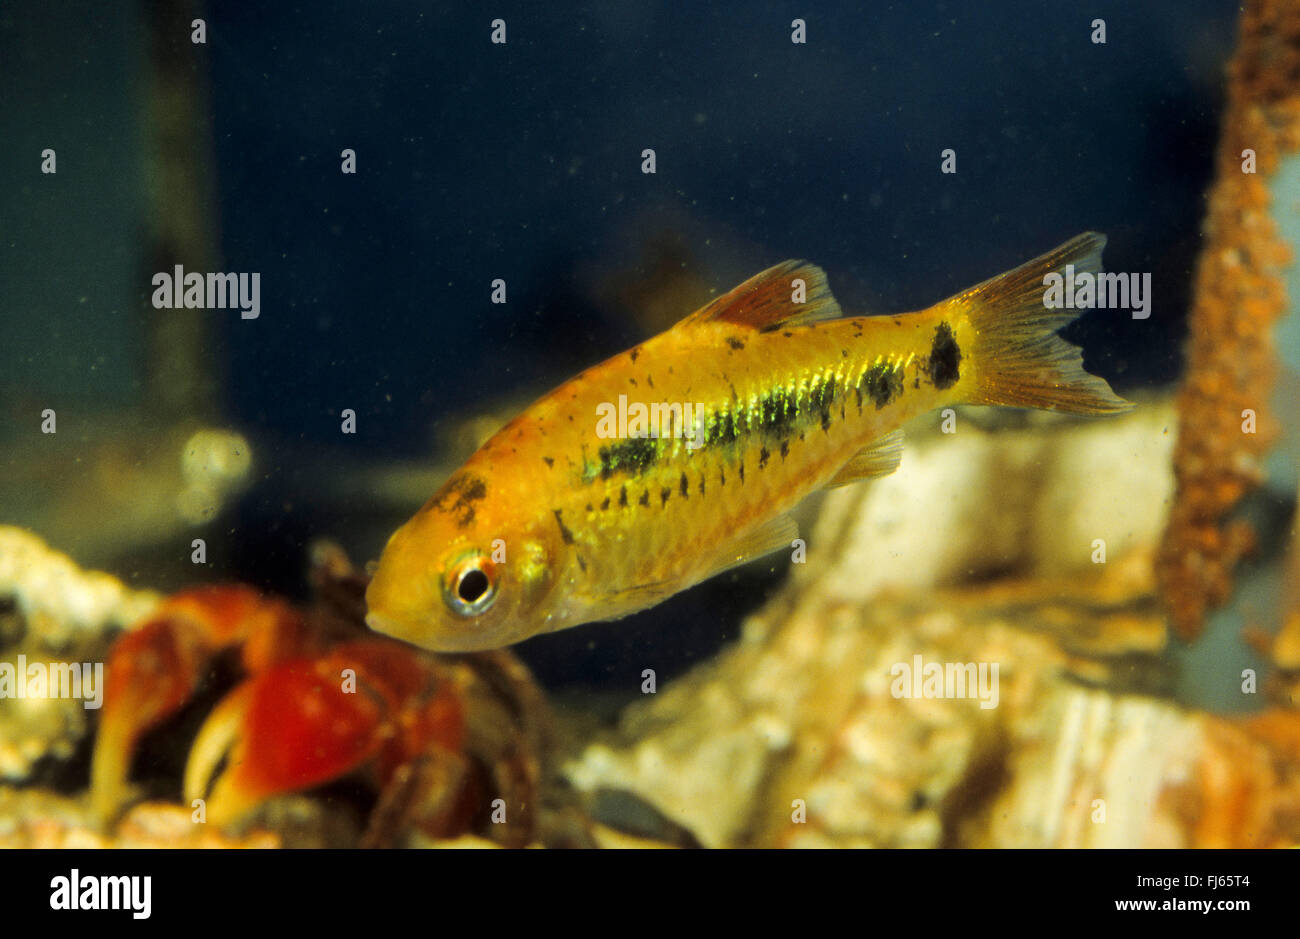 Green barb, China barb, Chinese barb (Barbodes semifasciolatus, Puntius semifasciolatus, Barbus semifasciolatus), Stock Photo